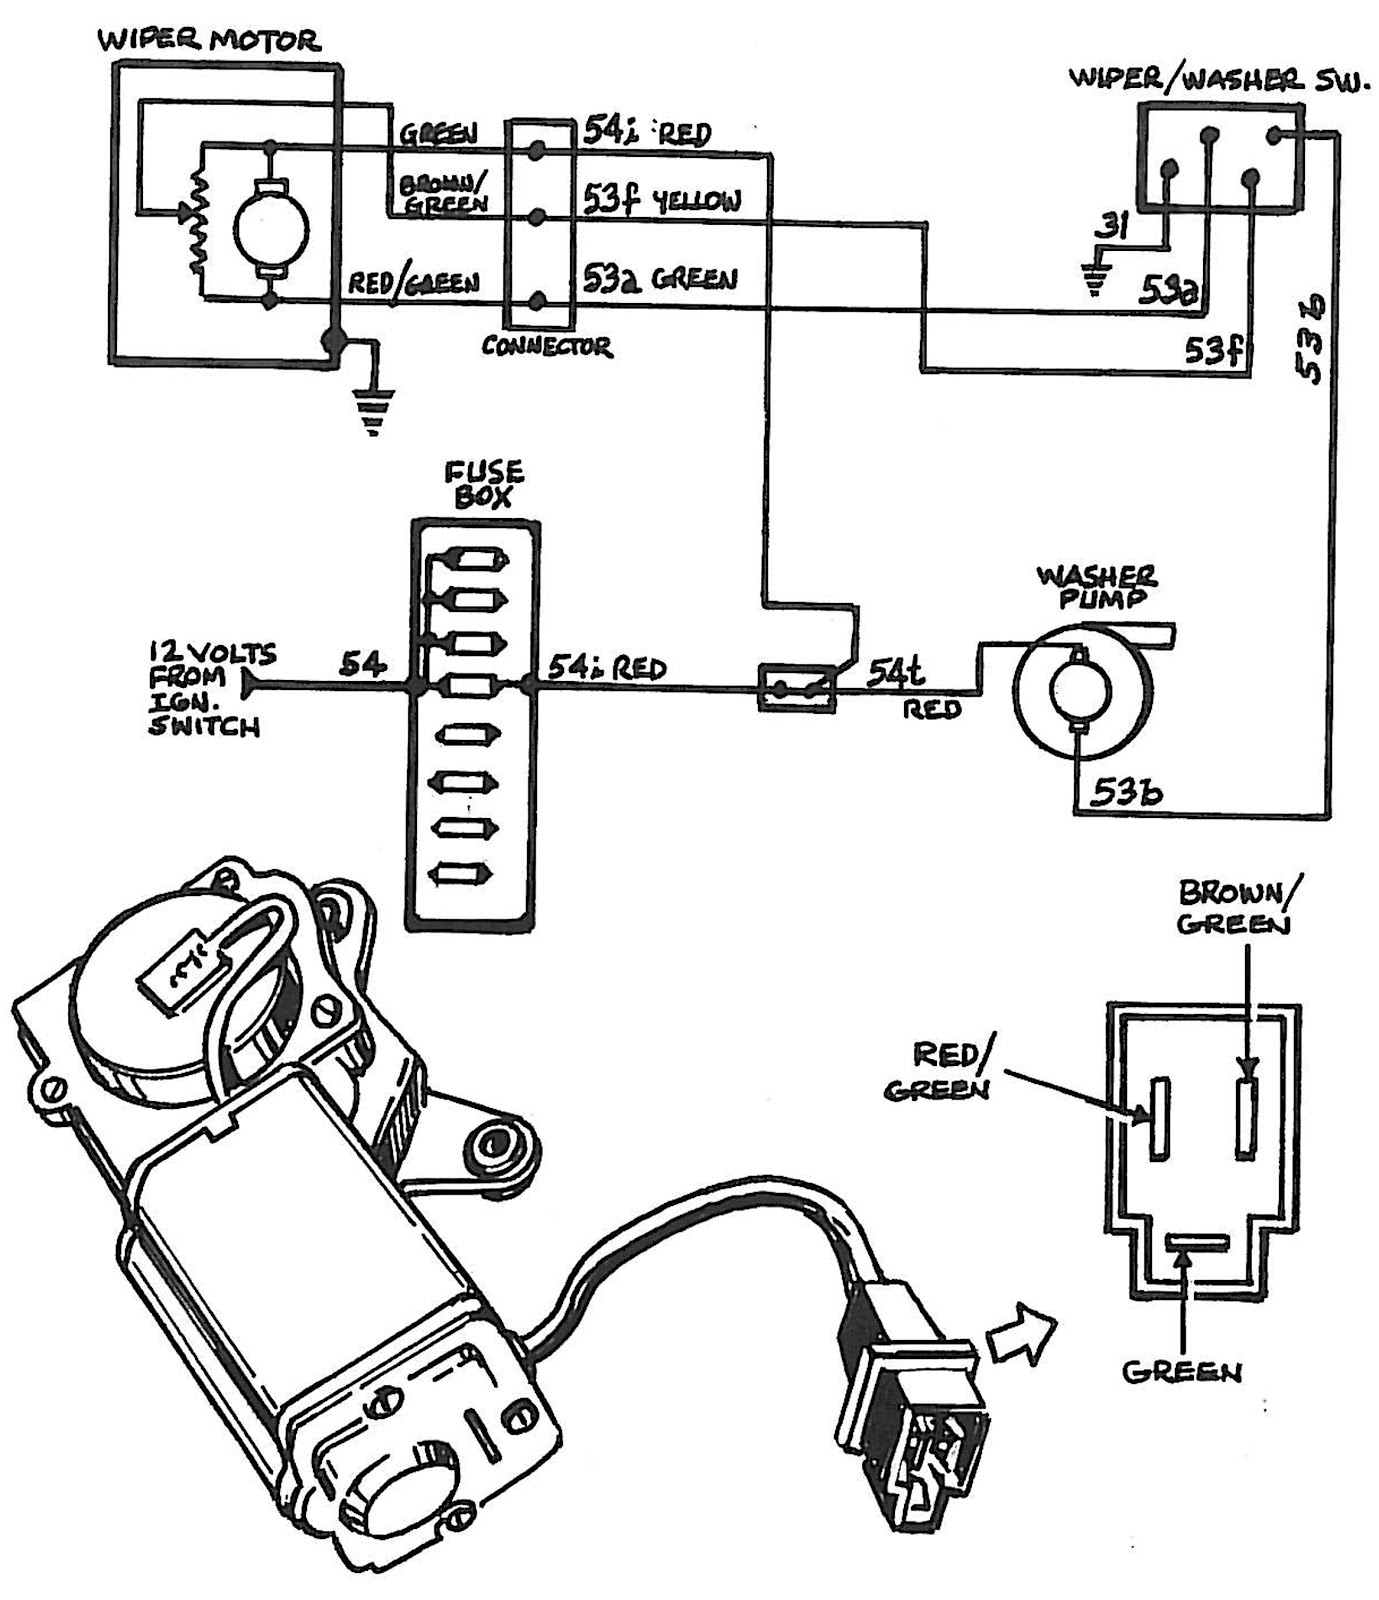 S25C 112021509580 saab journal early windshield wiper motor rebuild wiper motor wiring diagram for 1965 gto at creativeand.co